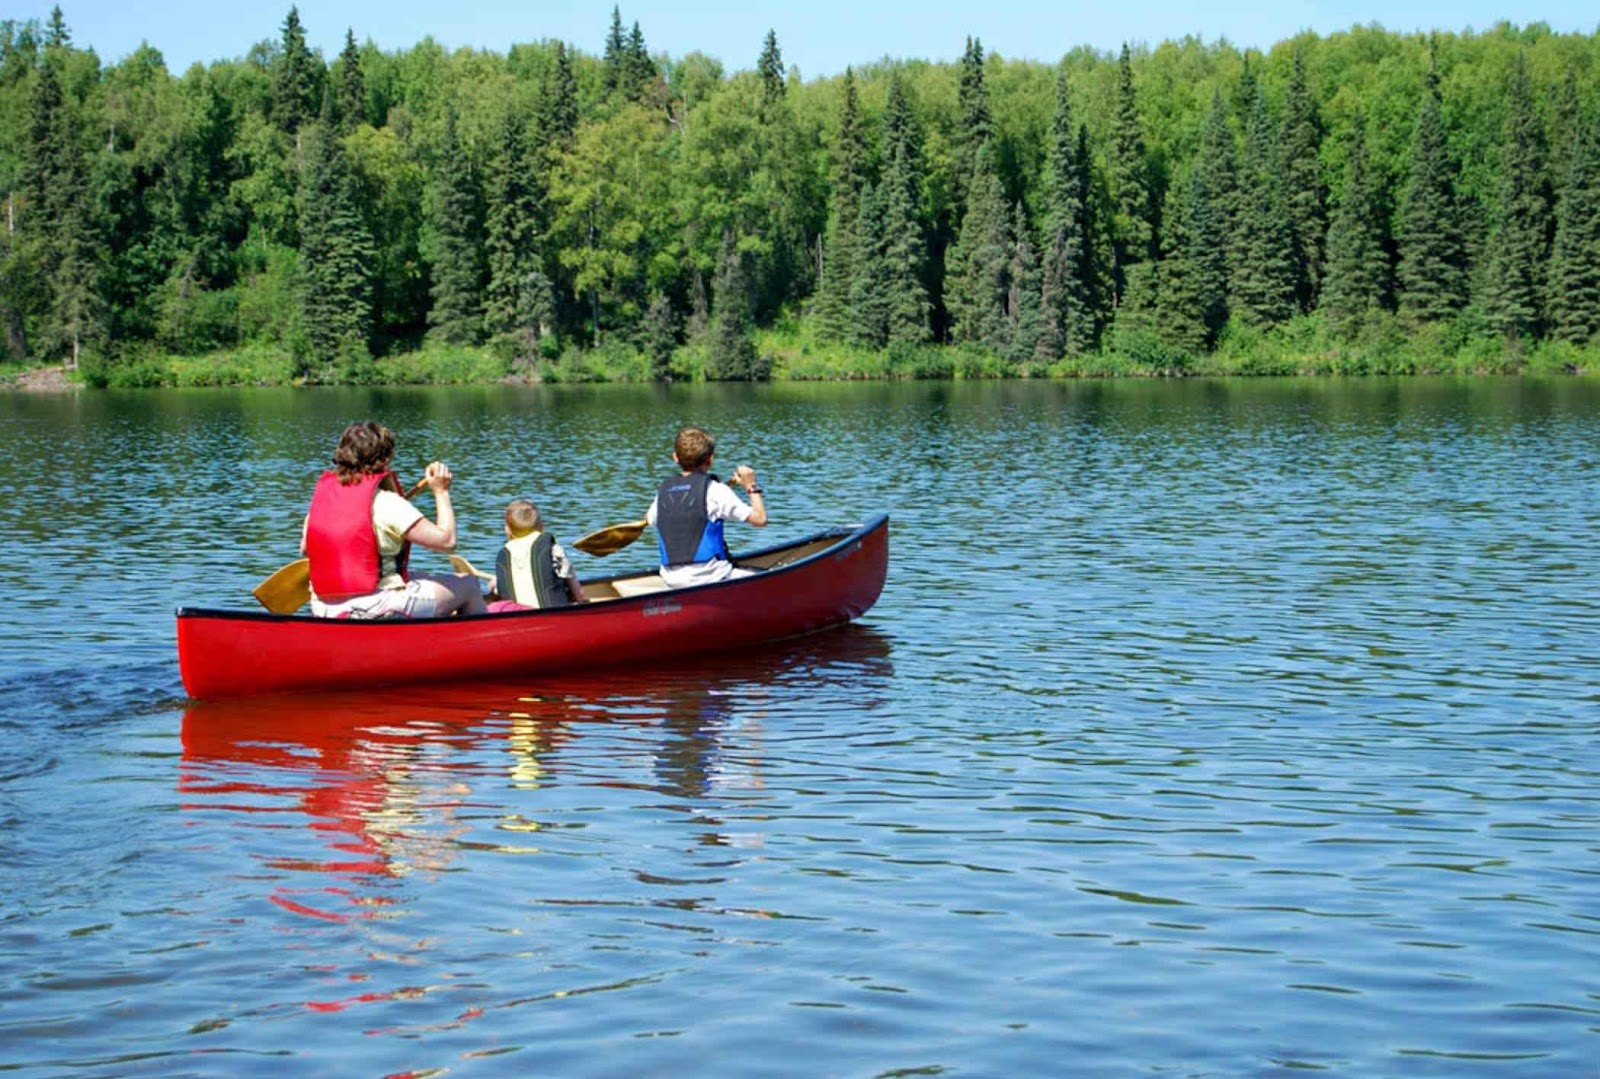 C:\Users\Family\Desktop\An_adult_and_two_children_canoe_on_lake.jpg